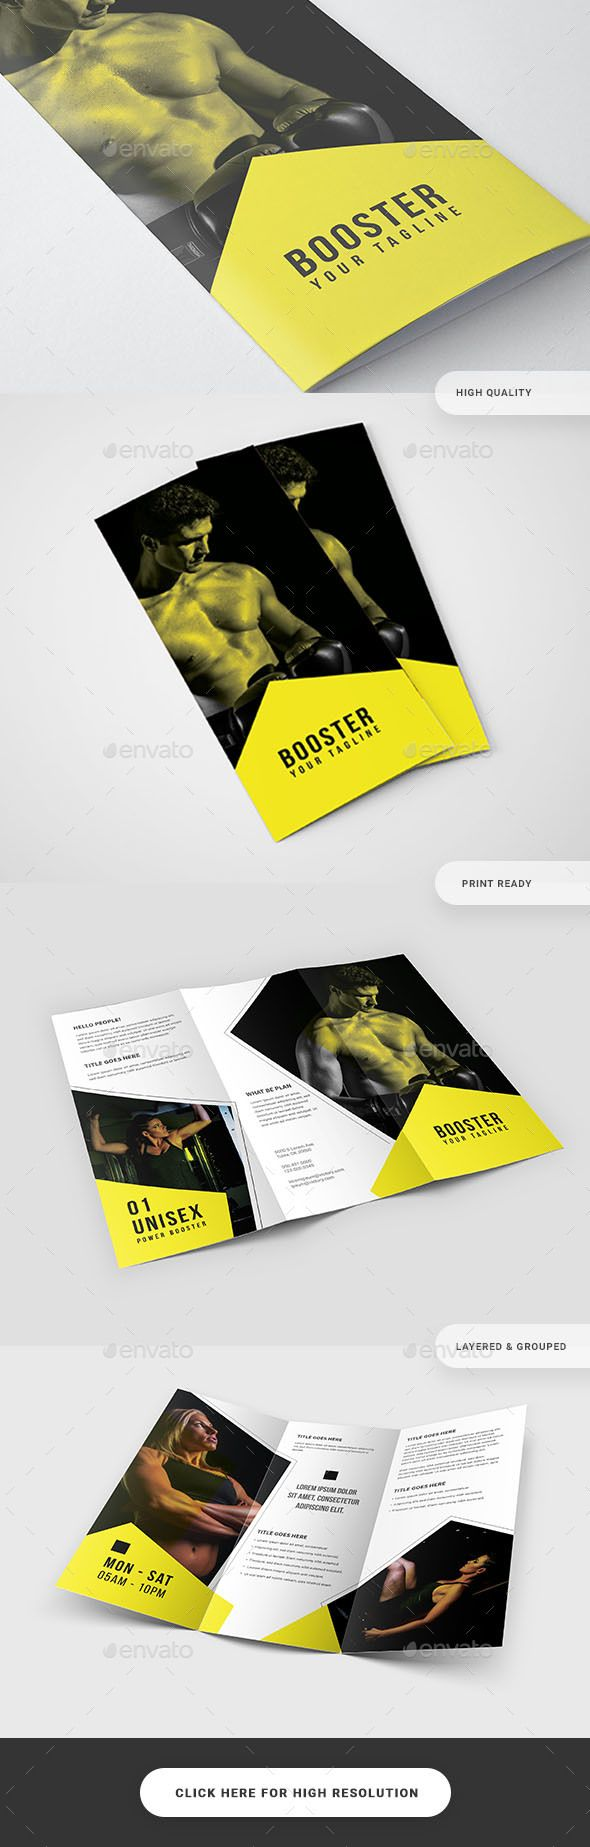 Fitness Gym Trifold Brochure Template PSD